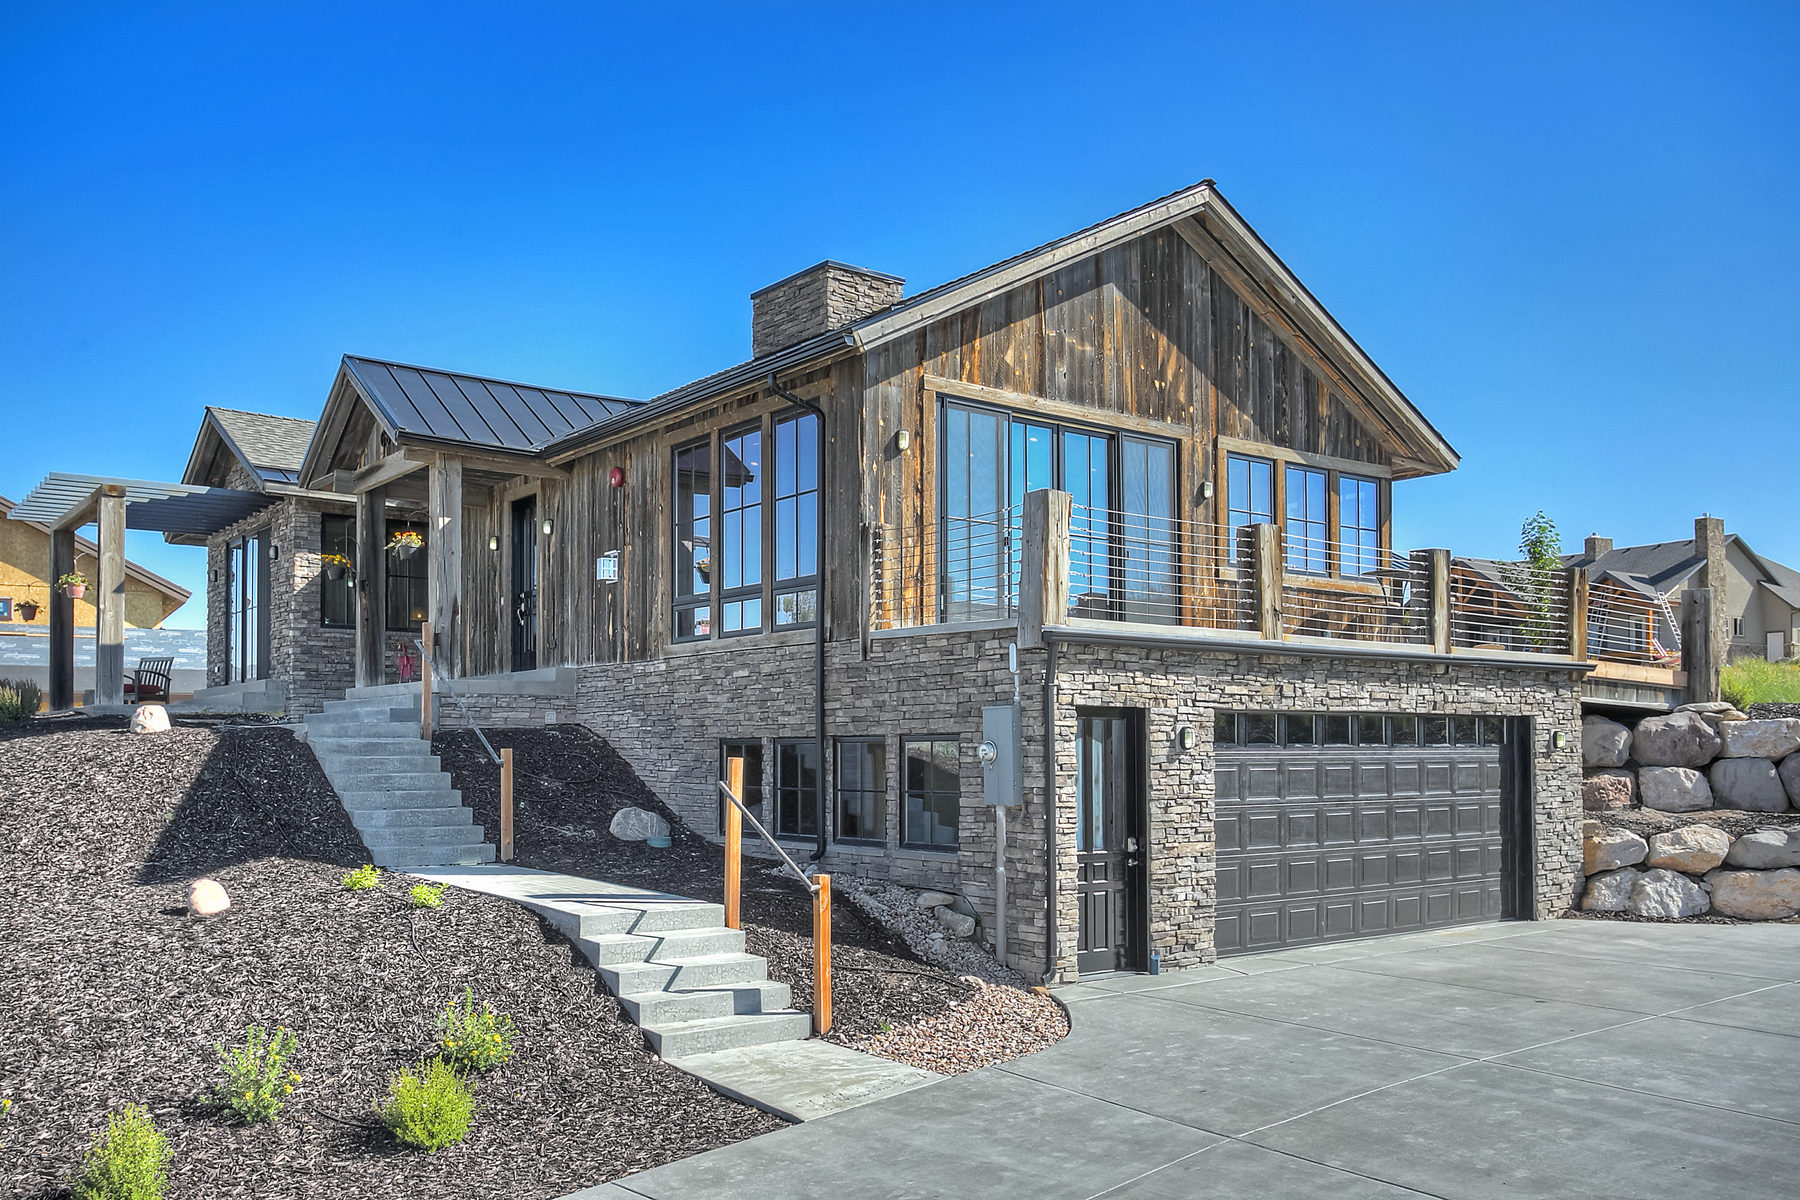 Single Family Home for Sale at Delightful Custom Home with Fabulous Views 6844 Mineral Loop Park City, Utah 84098 United States